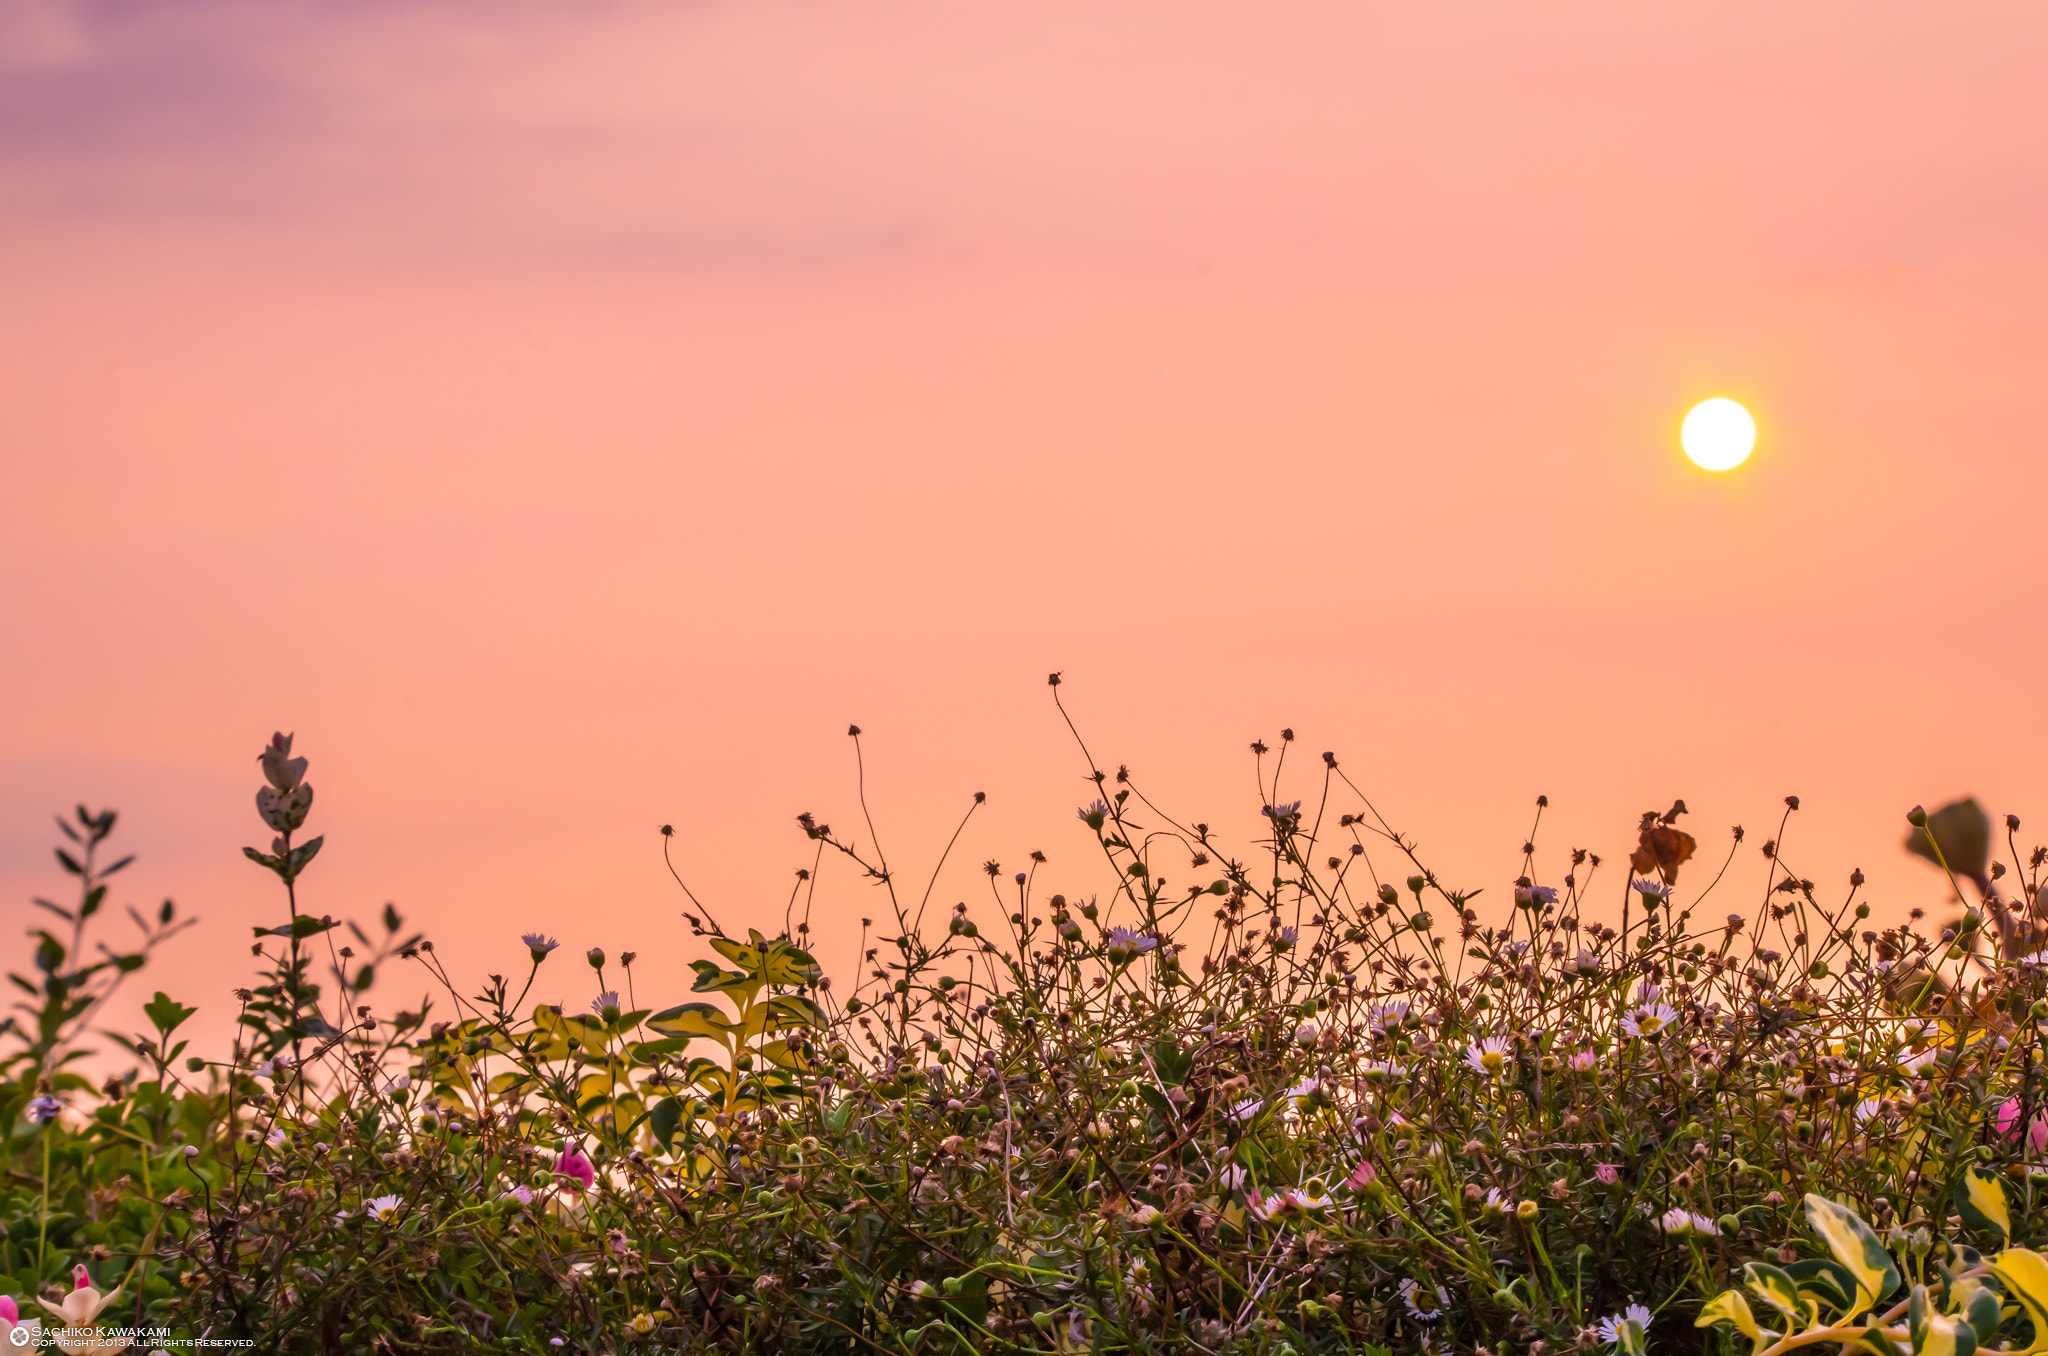 Photograph Flowers and sunsets by Sachiko Kawakami on 500px